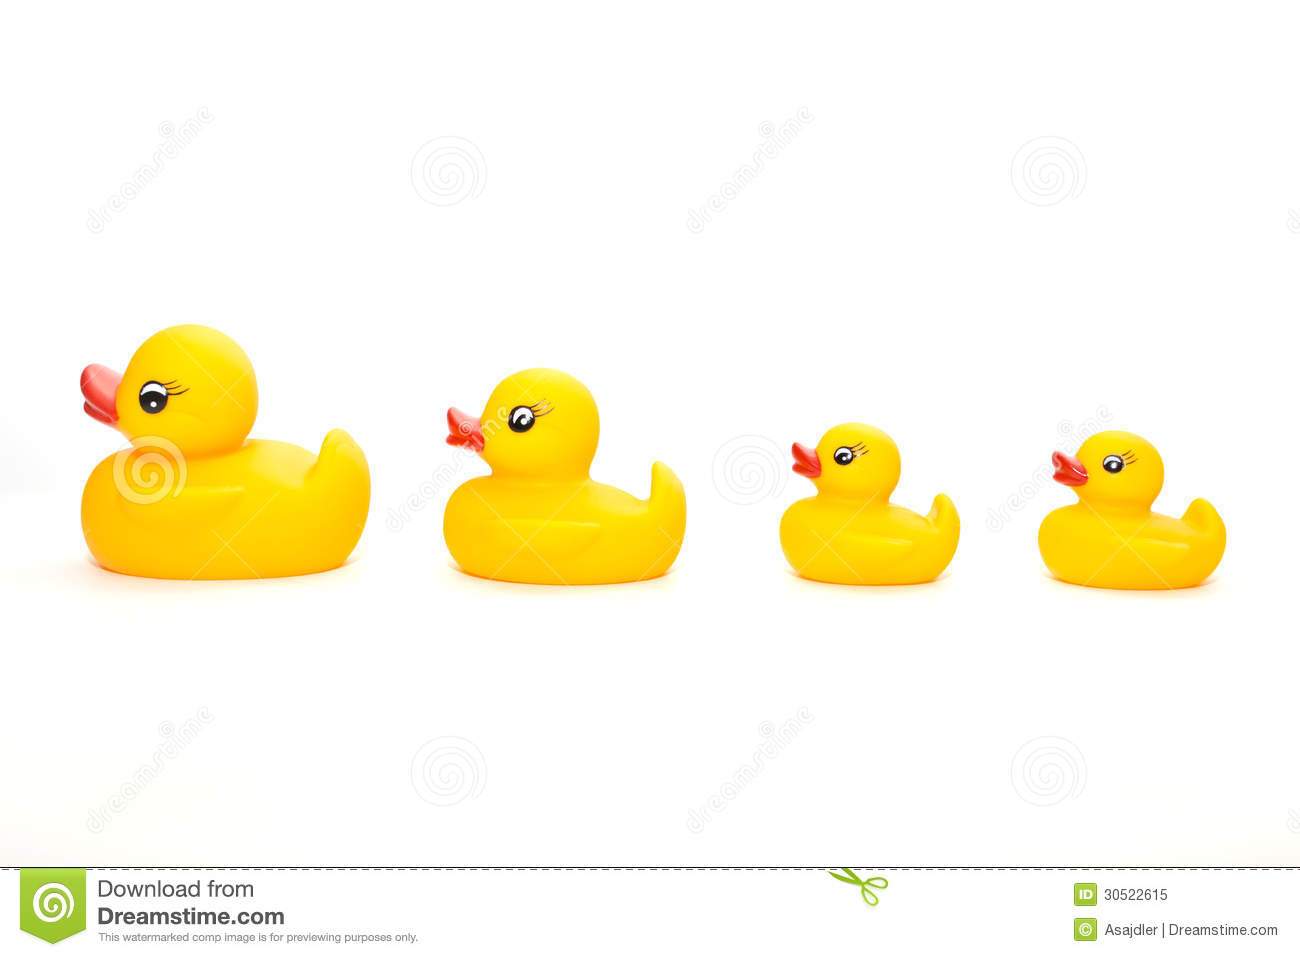 Four yellow rubber ducks in a line four yellow rubber ducks in a line